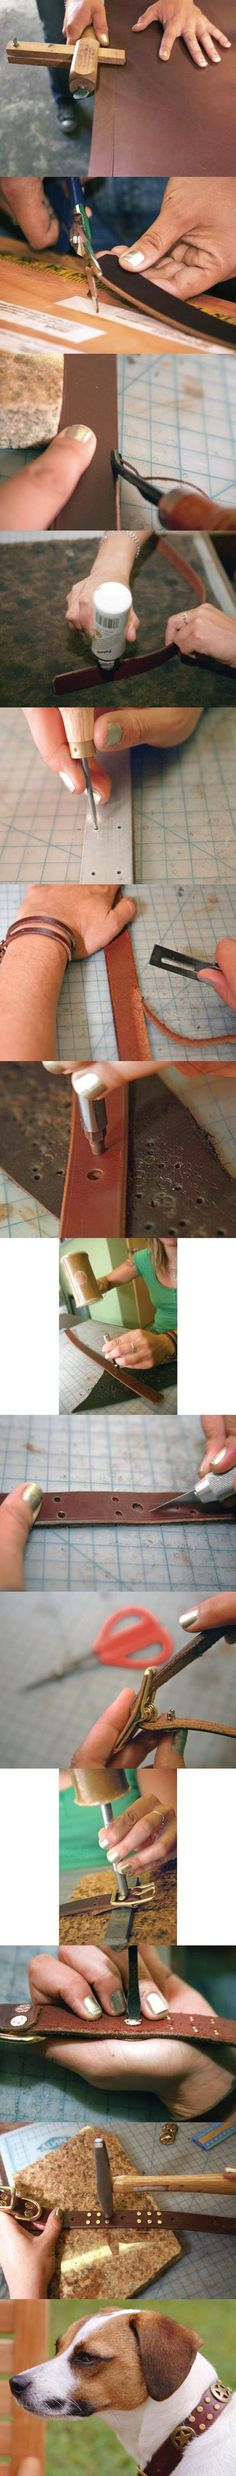 DIY Stylish Leather Dog Collar  step by step